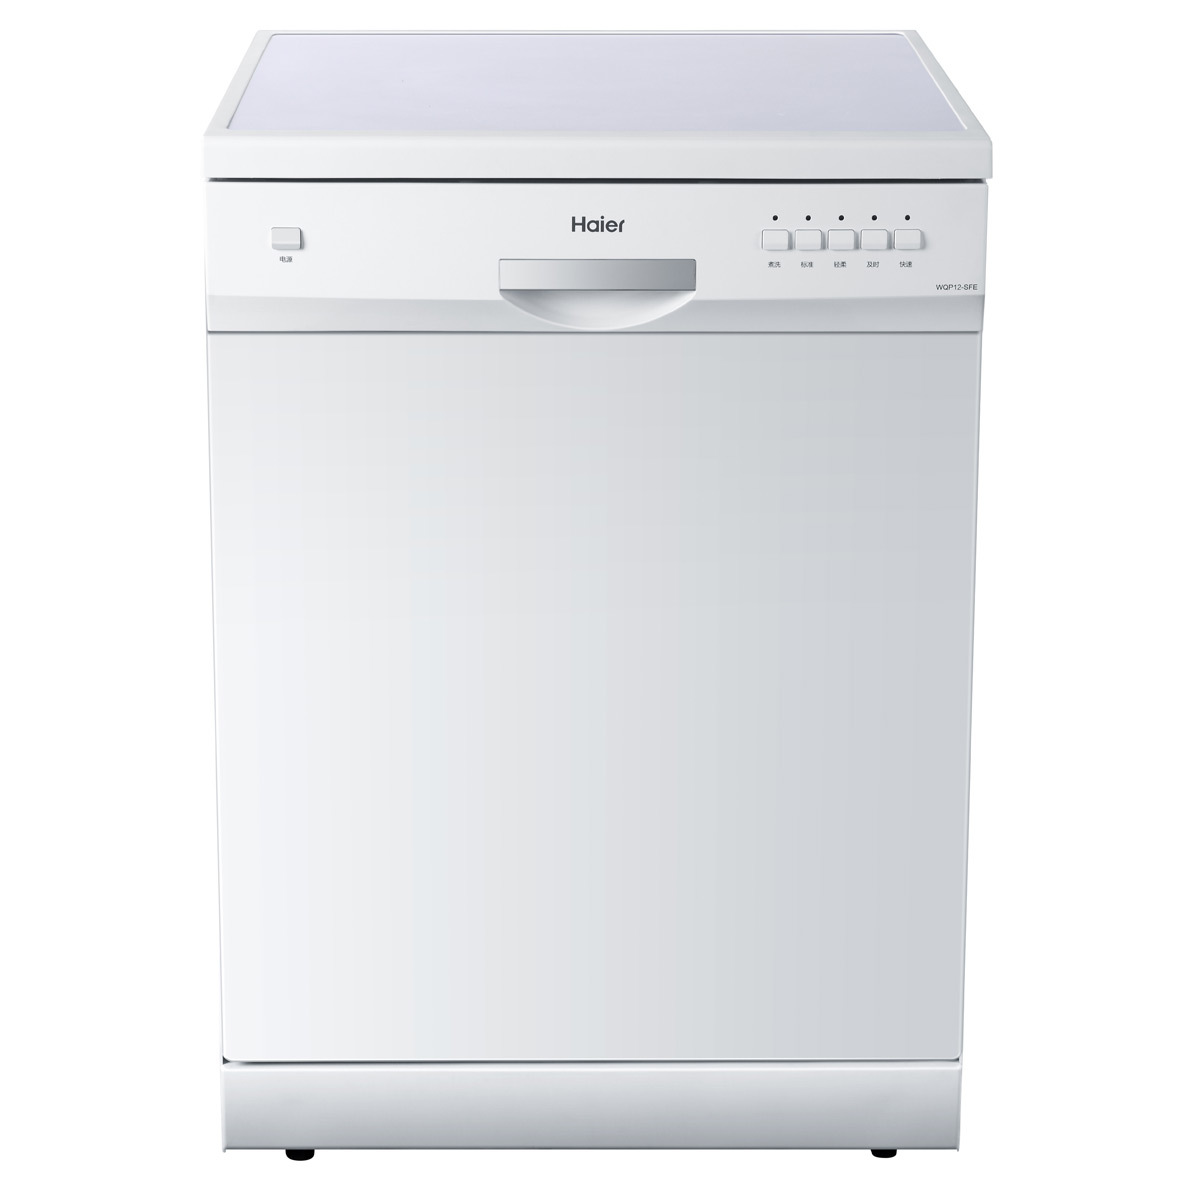 Haier/Haier WQP12-SFE Freestanding Dishwasher Fully Automatic Household Dishwasher Built-in Dual Pur